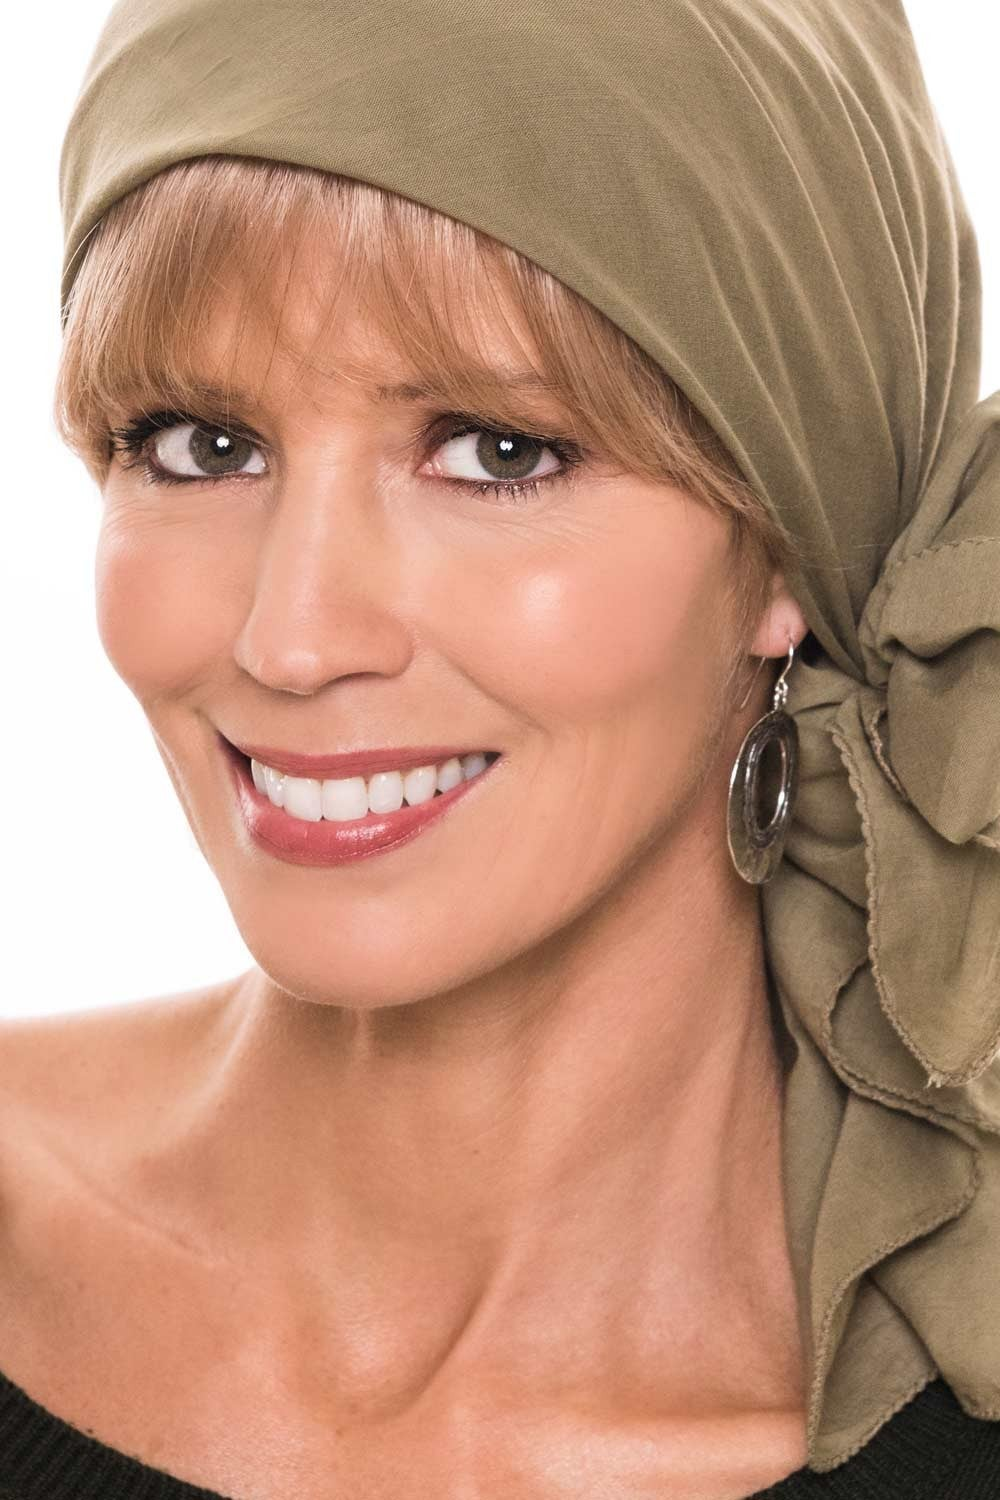 human-hair-bangs-solid-cotton-scarf--fringe-cancer-chemo-patients-2